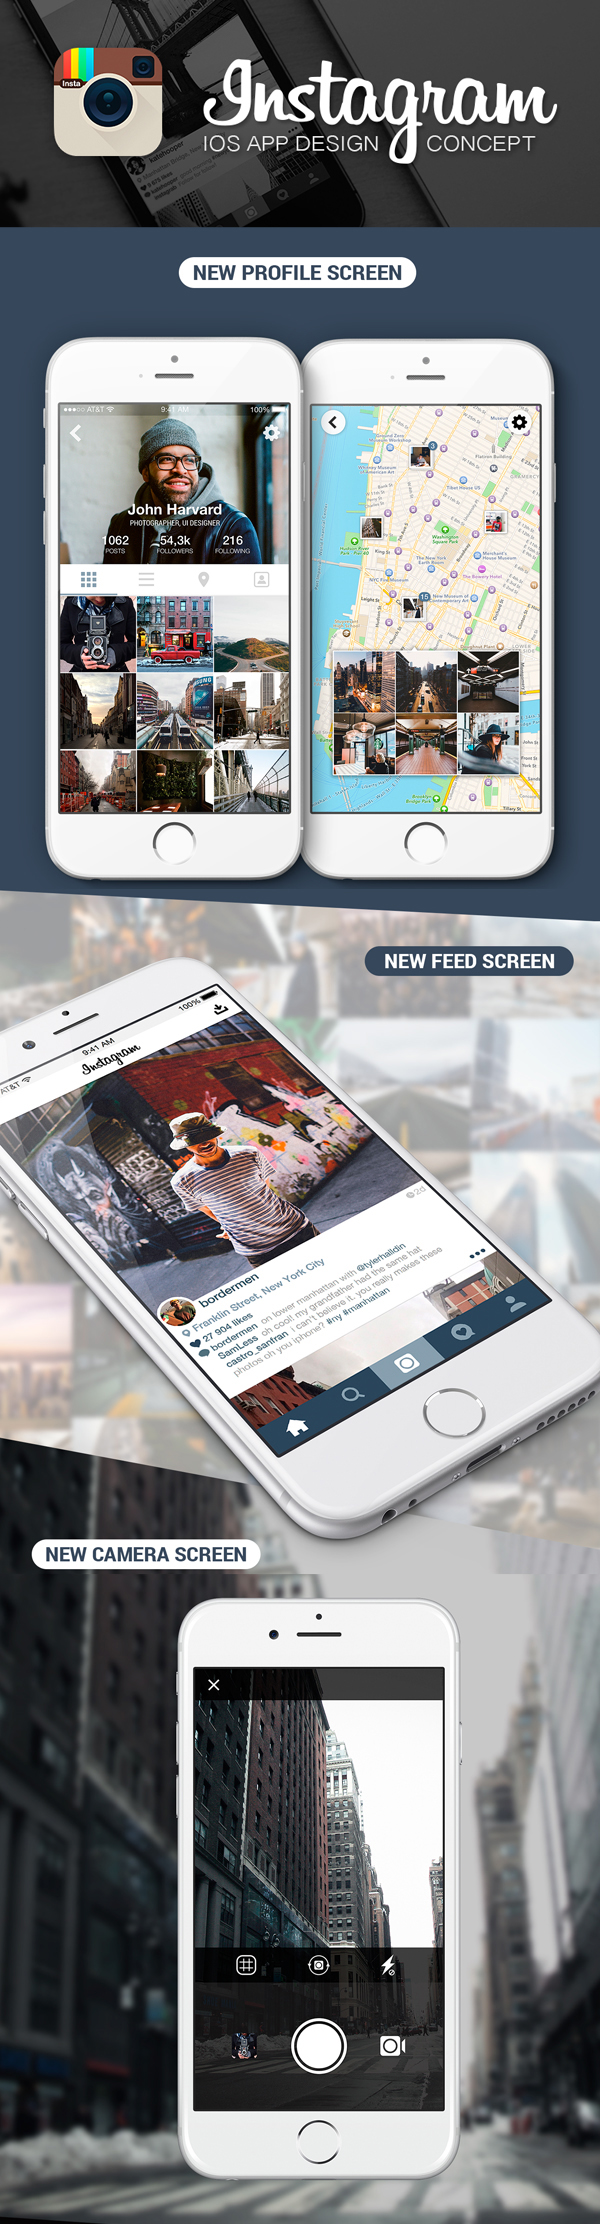 Instagram App Redesign Concept by Anthony Fomin